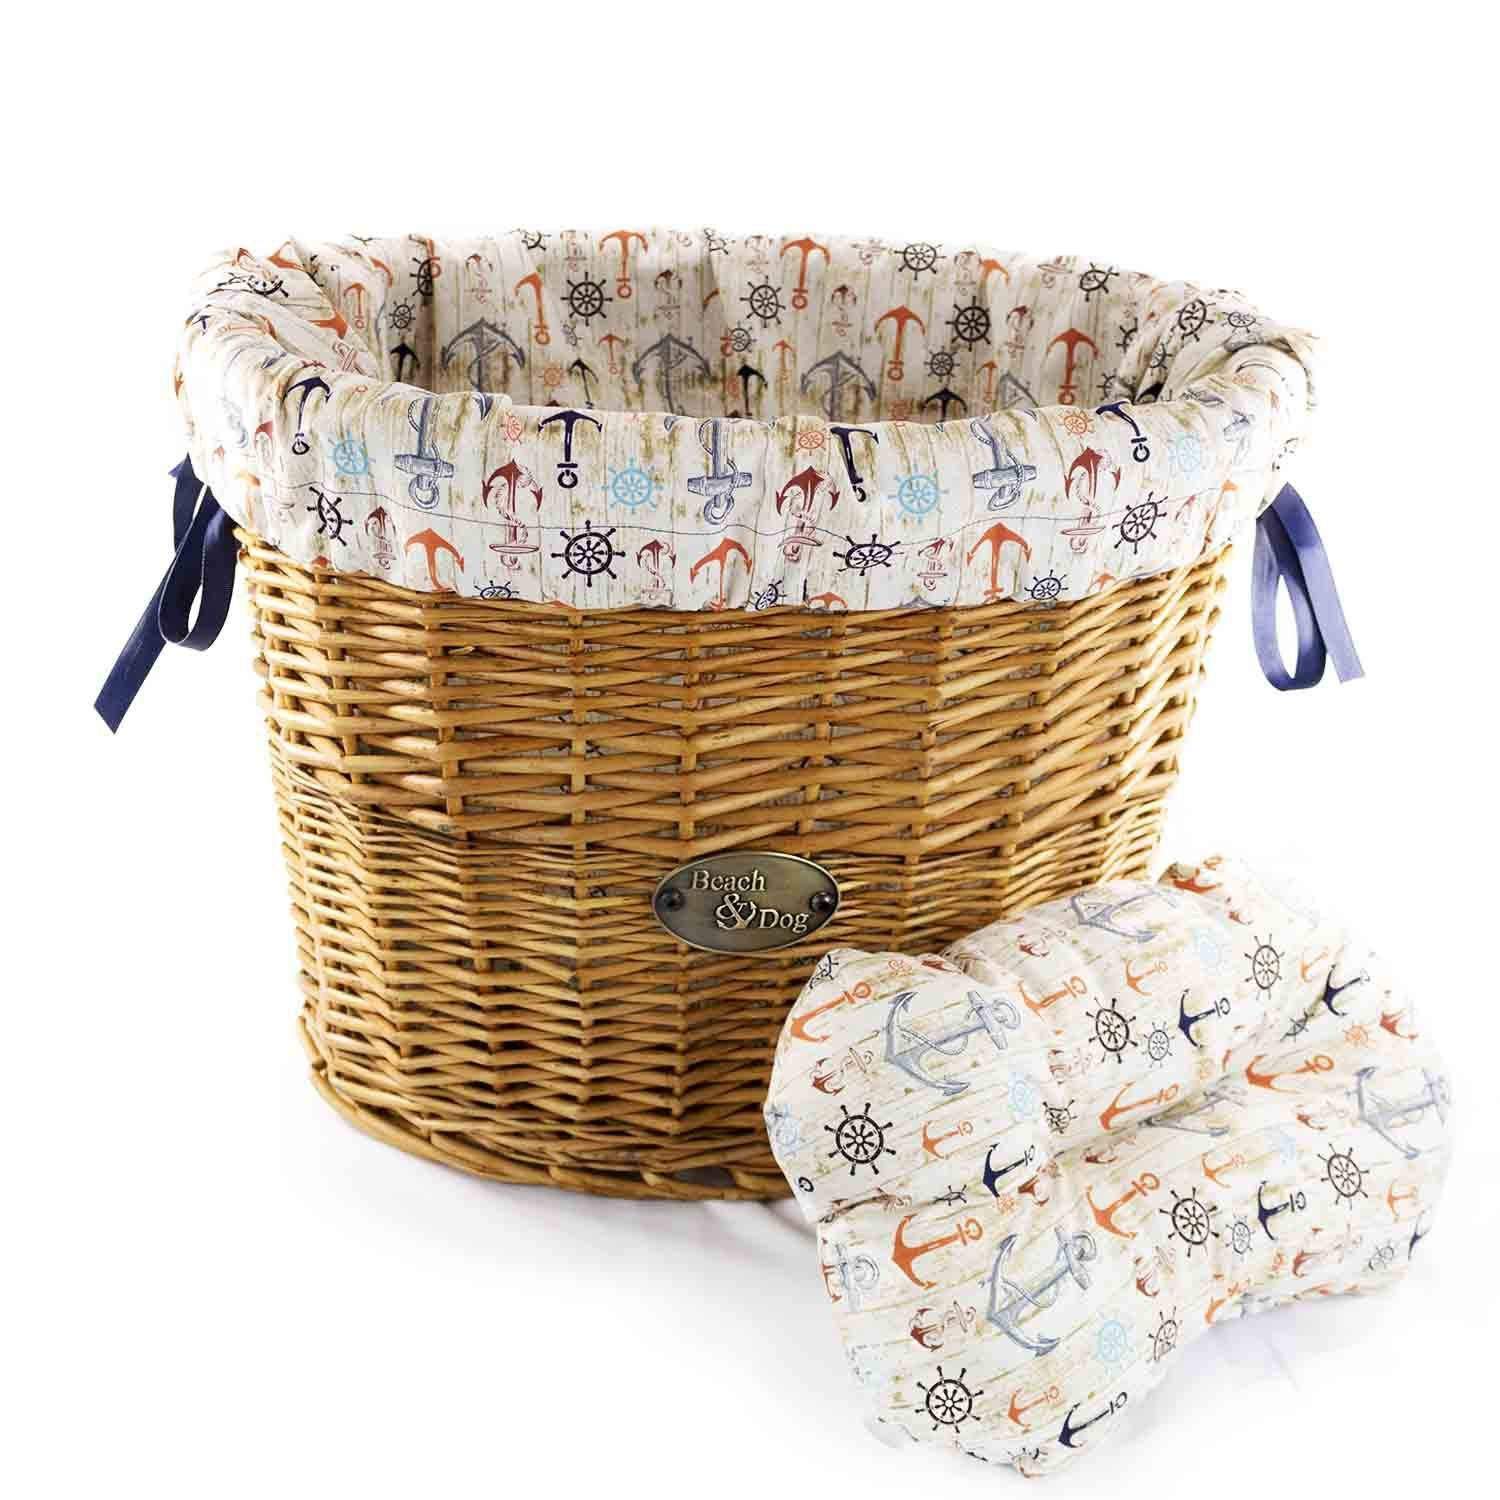 Ship Wheels and Anchors Basket Liner - Beach & Dog Co